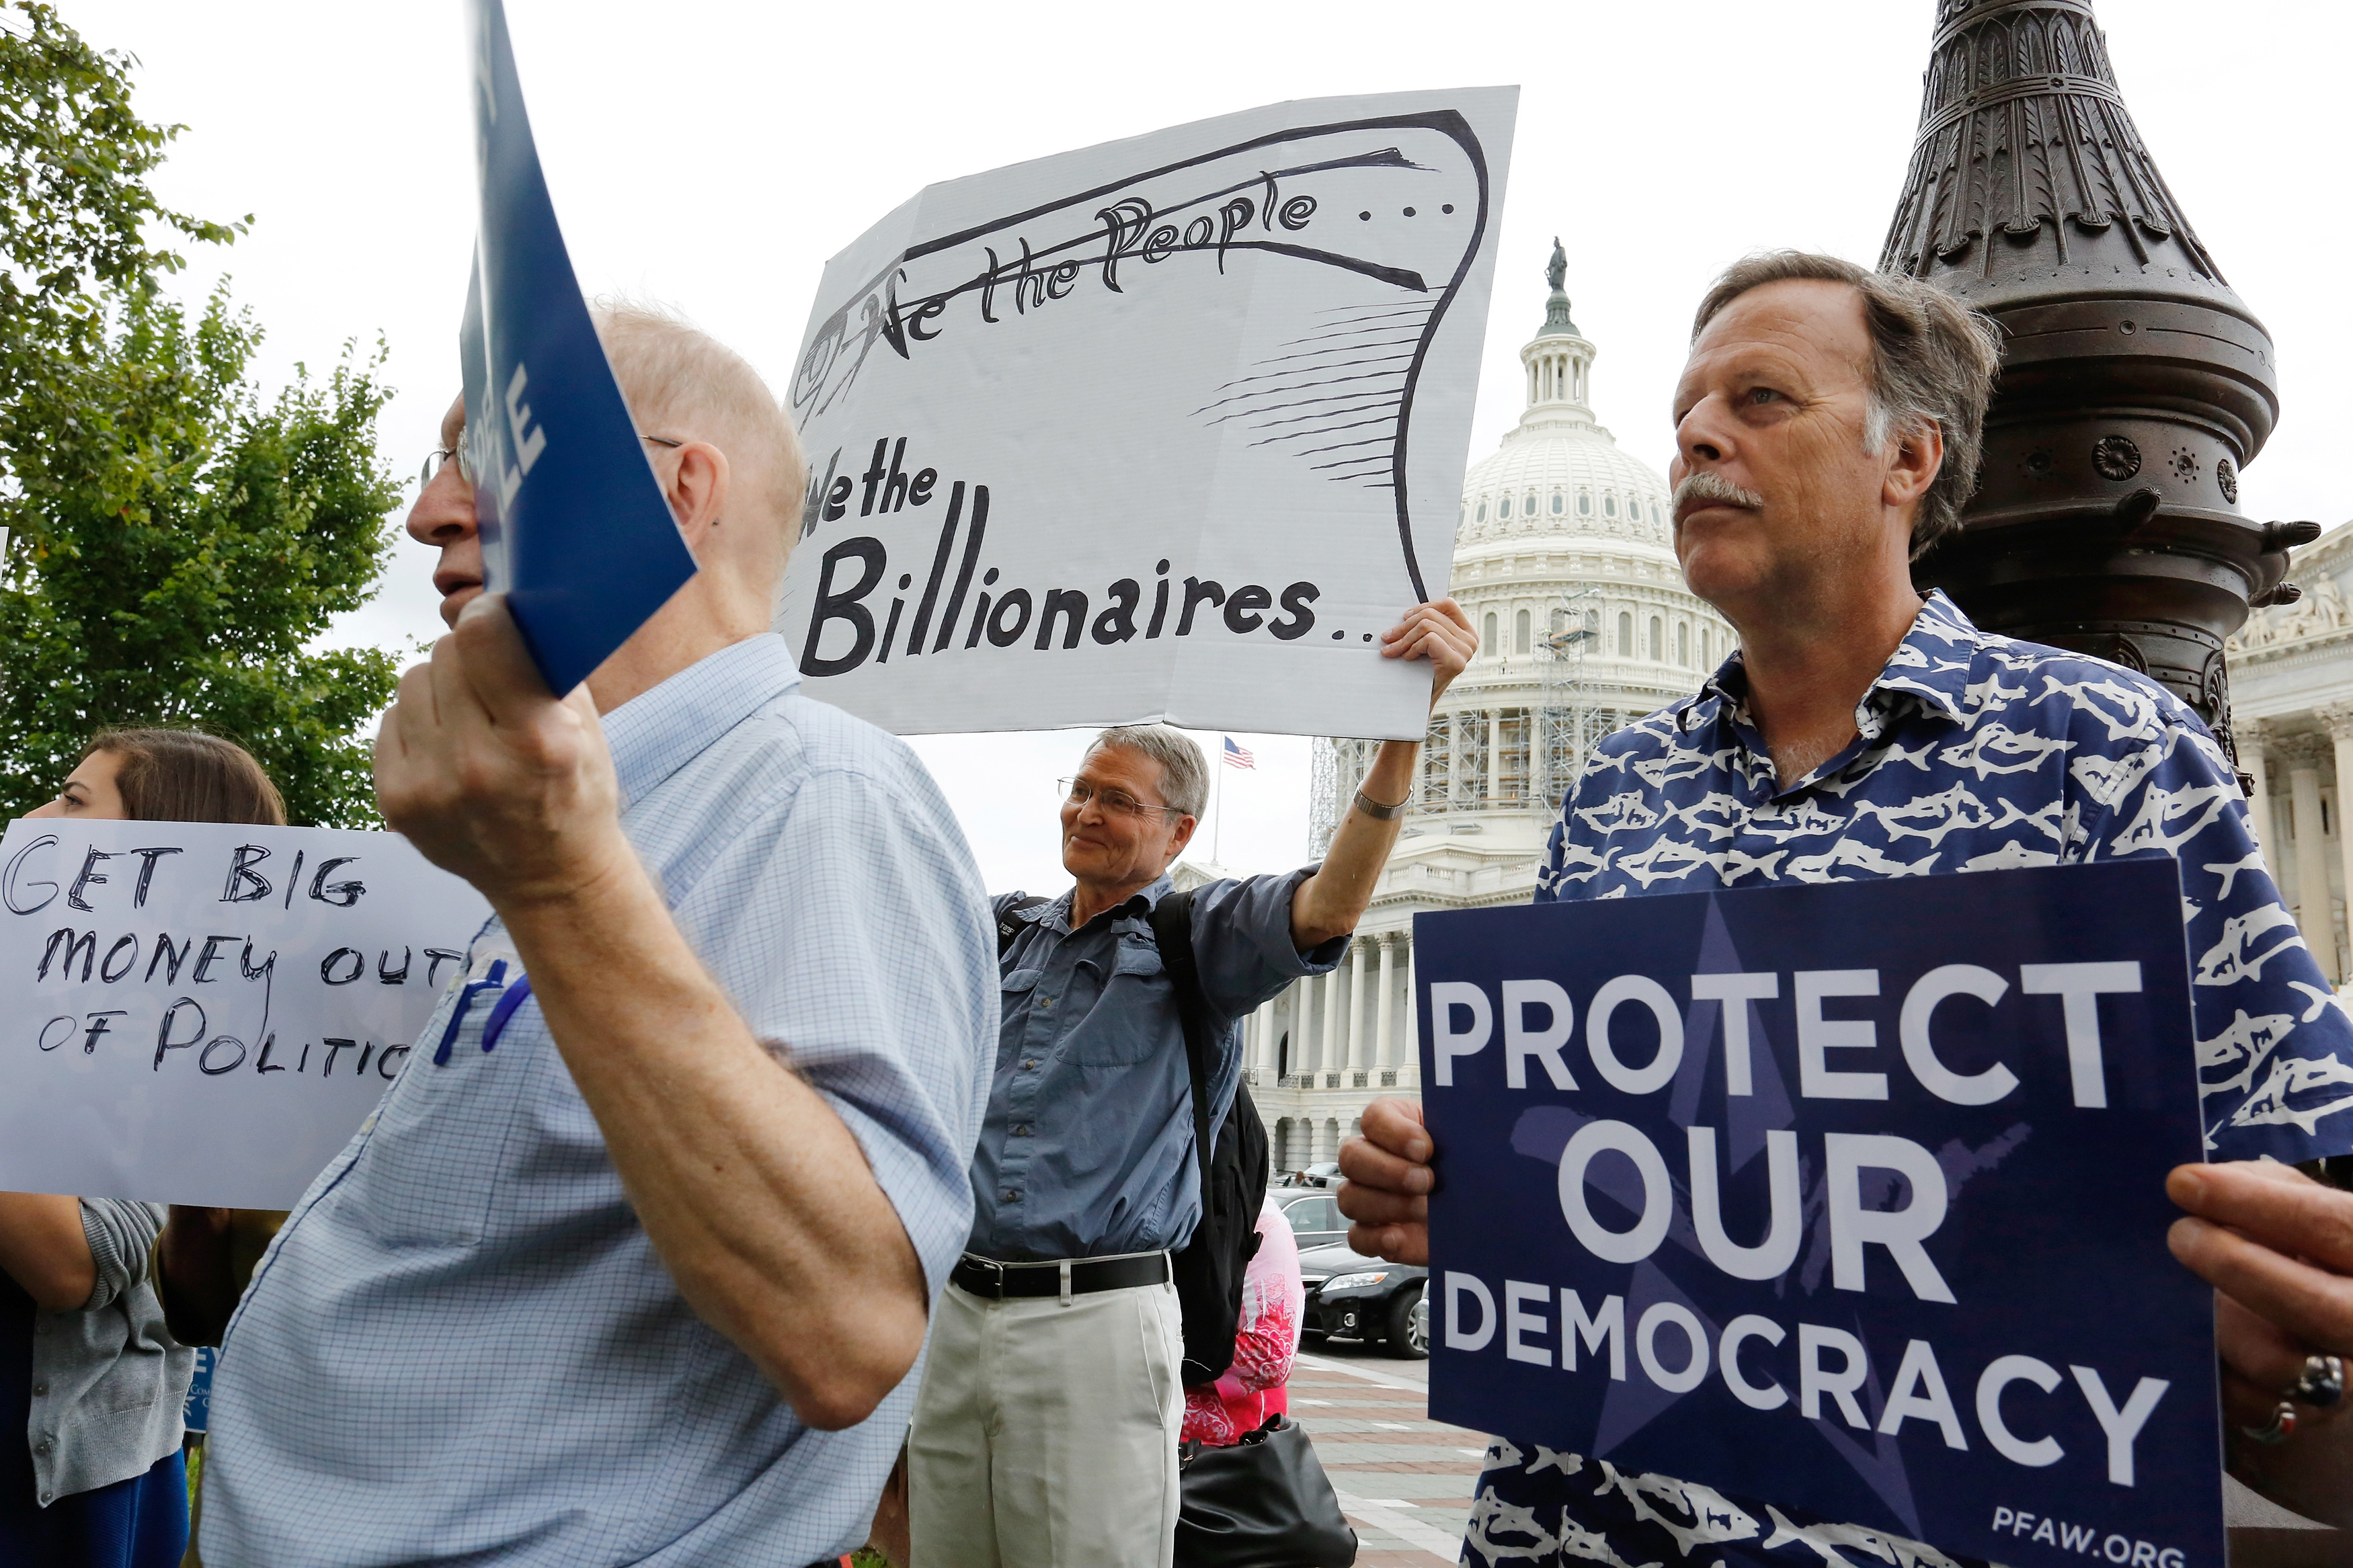 Supporters look on at a news conference on Capitol Hill led by Democratic senators and congressmen in support of a proposed constitutional amendment for campaign finance reform on September 8, 2014.